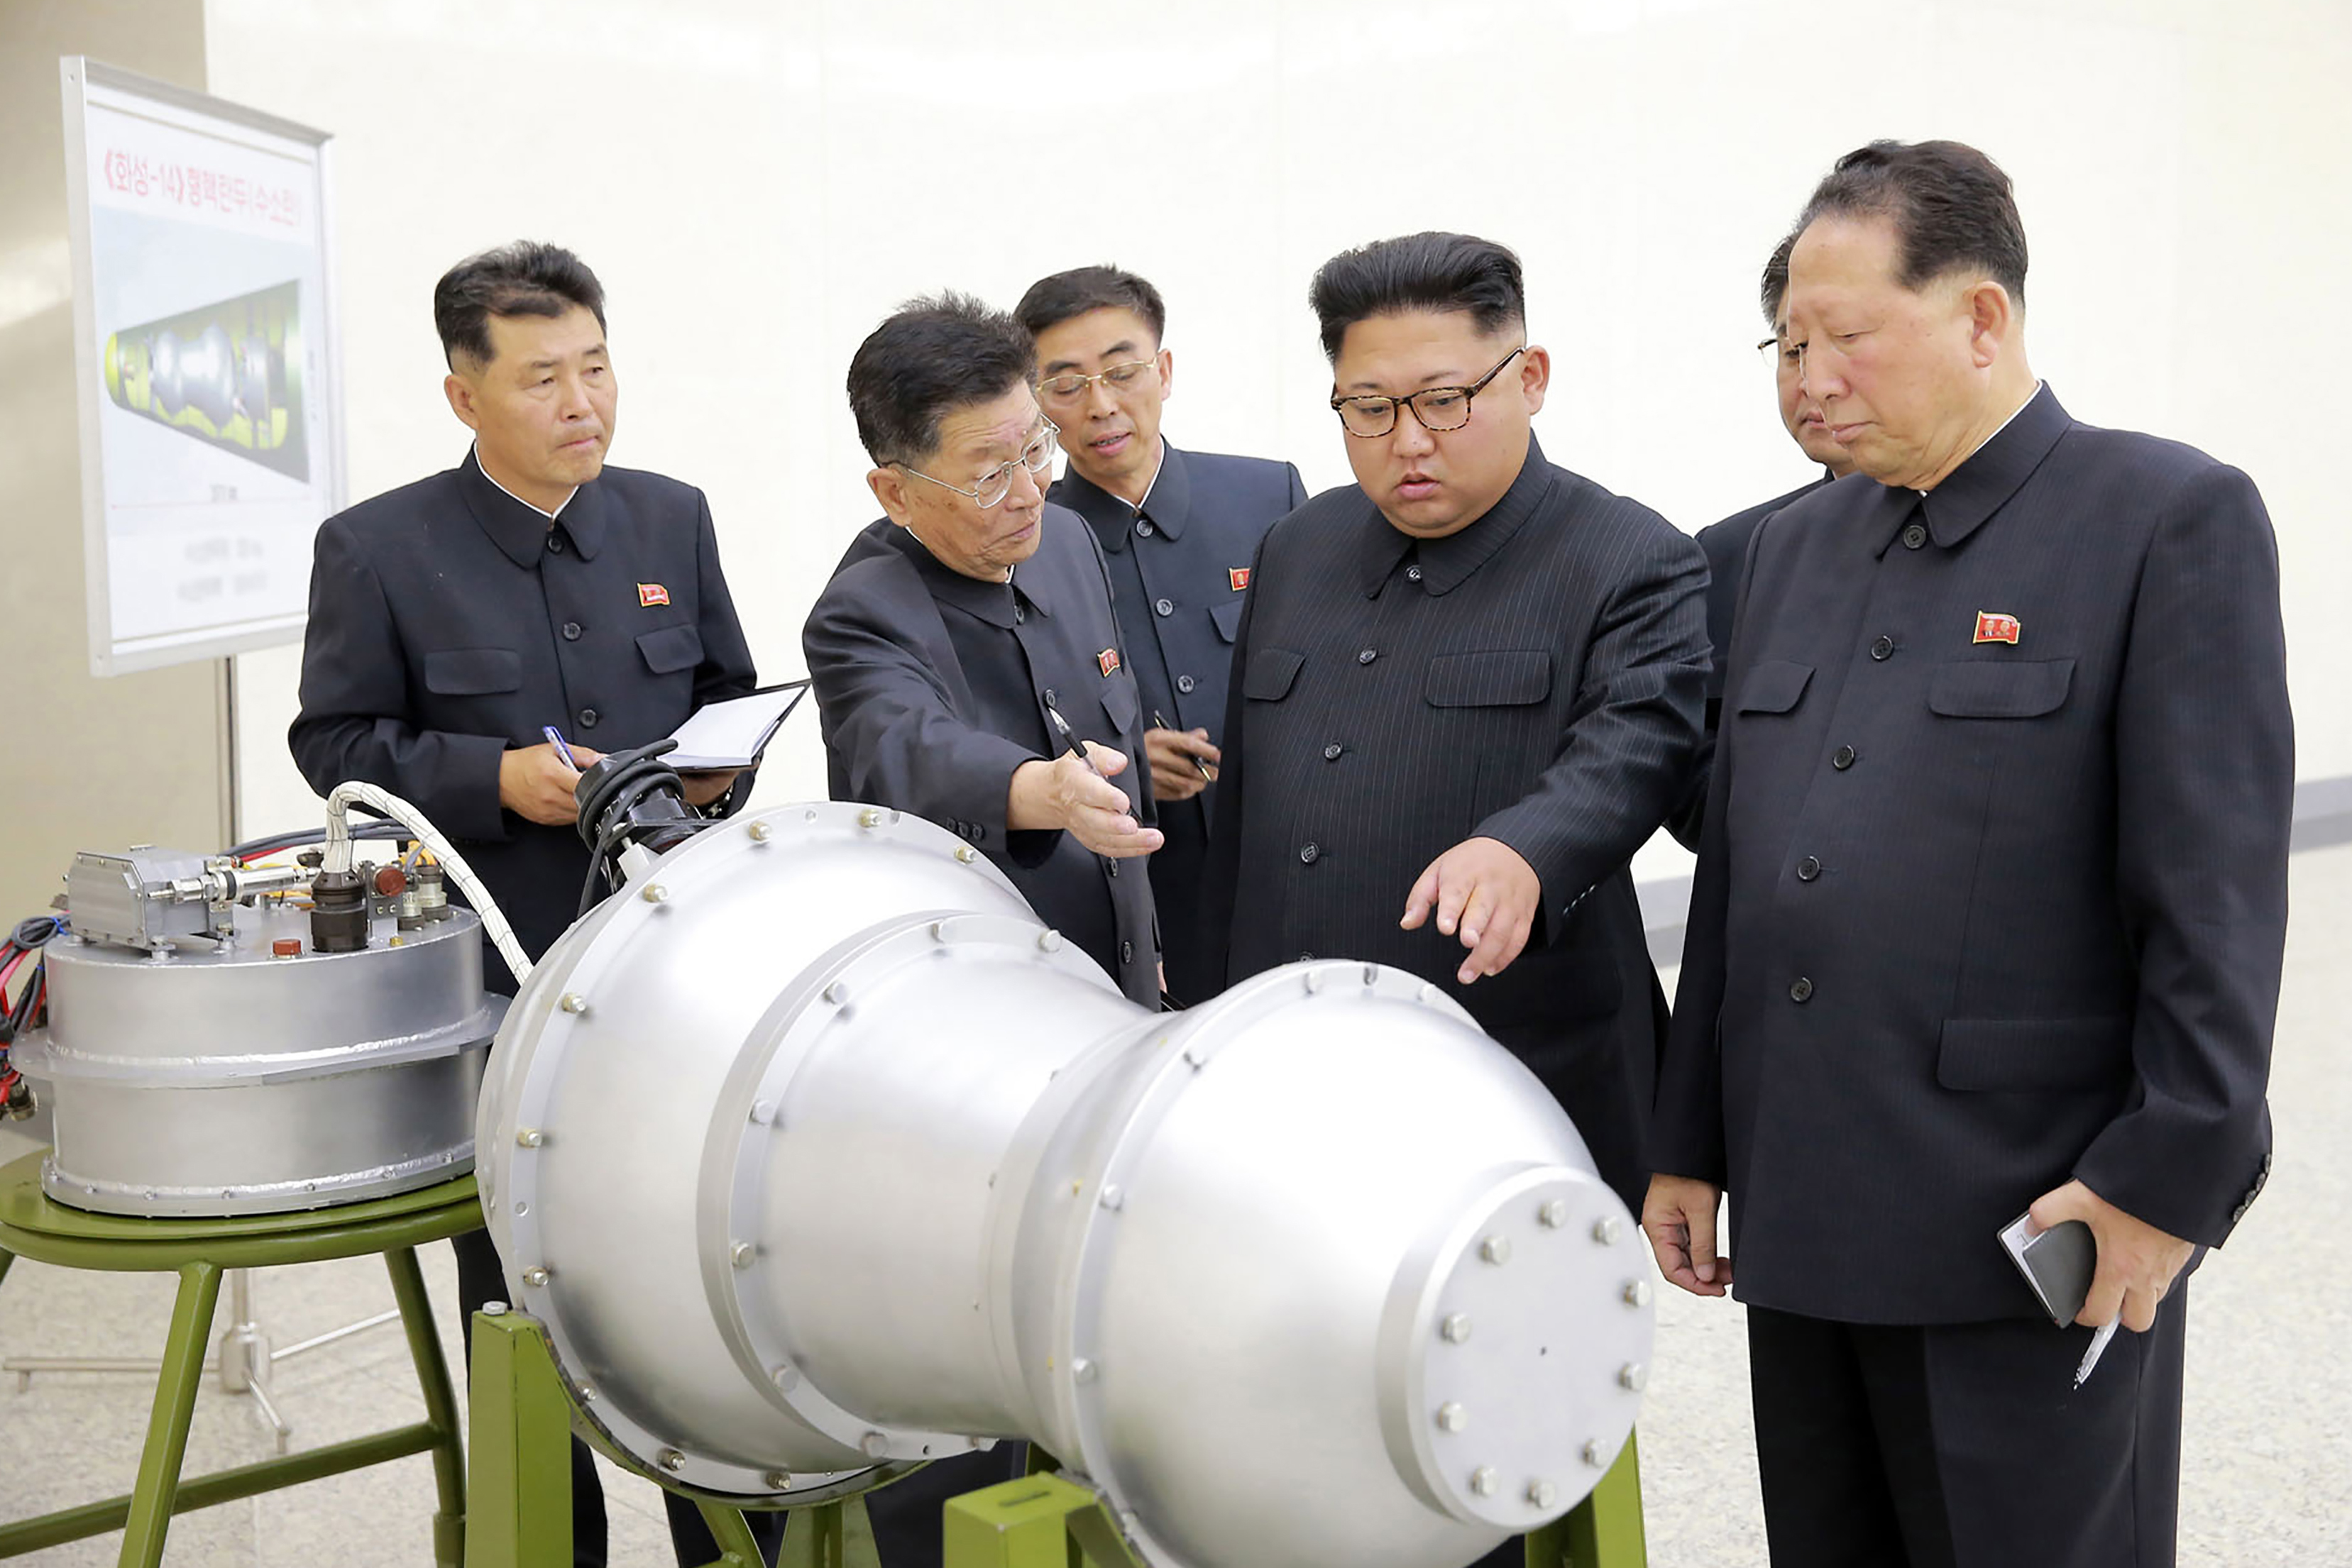 This undated picture released by North Korea's official Korean Central News Agency (KCNA) on September 3, 2017 shows North Korean leader Kim Jong-Un looking at a metal casing with two bulges at an undisclosed location.